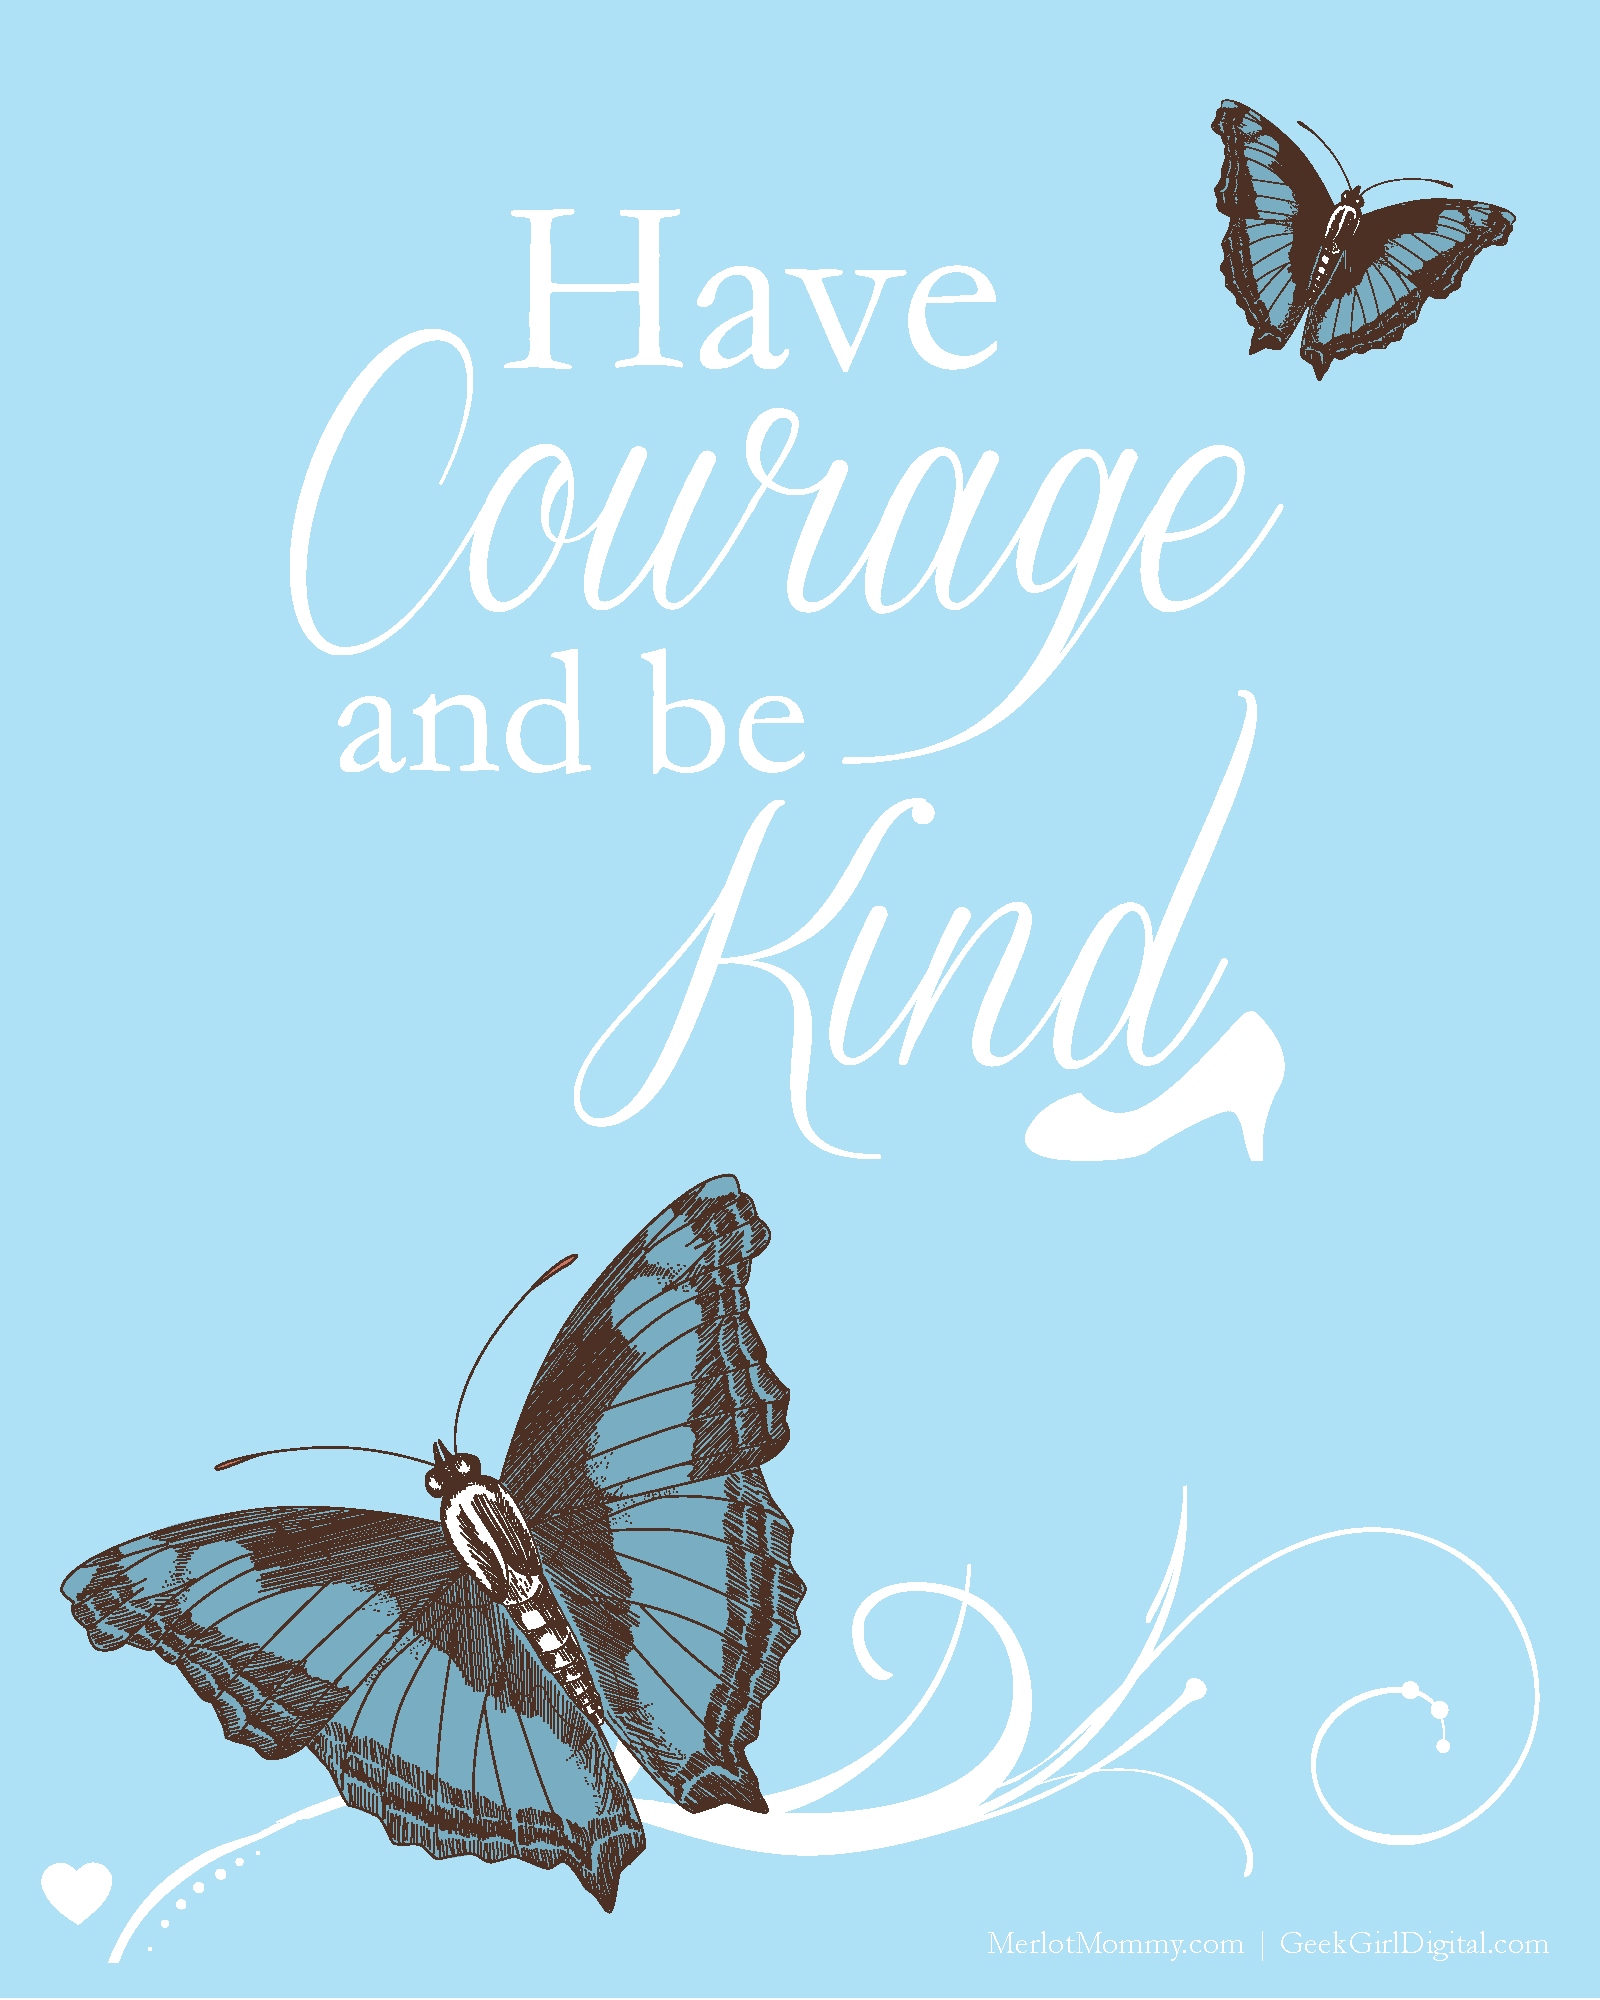 photograph relating to Have Courage and Be Kind Printable titled Free of charge \